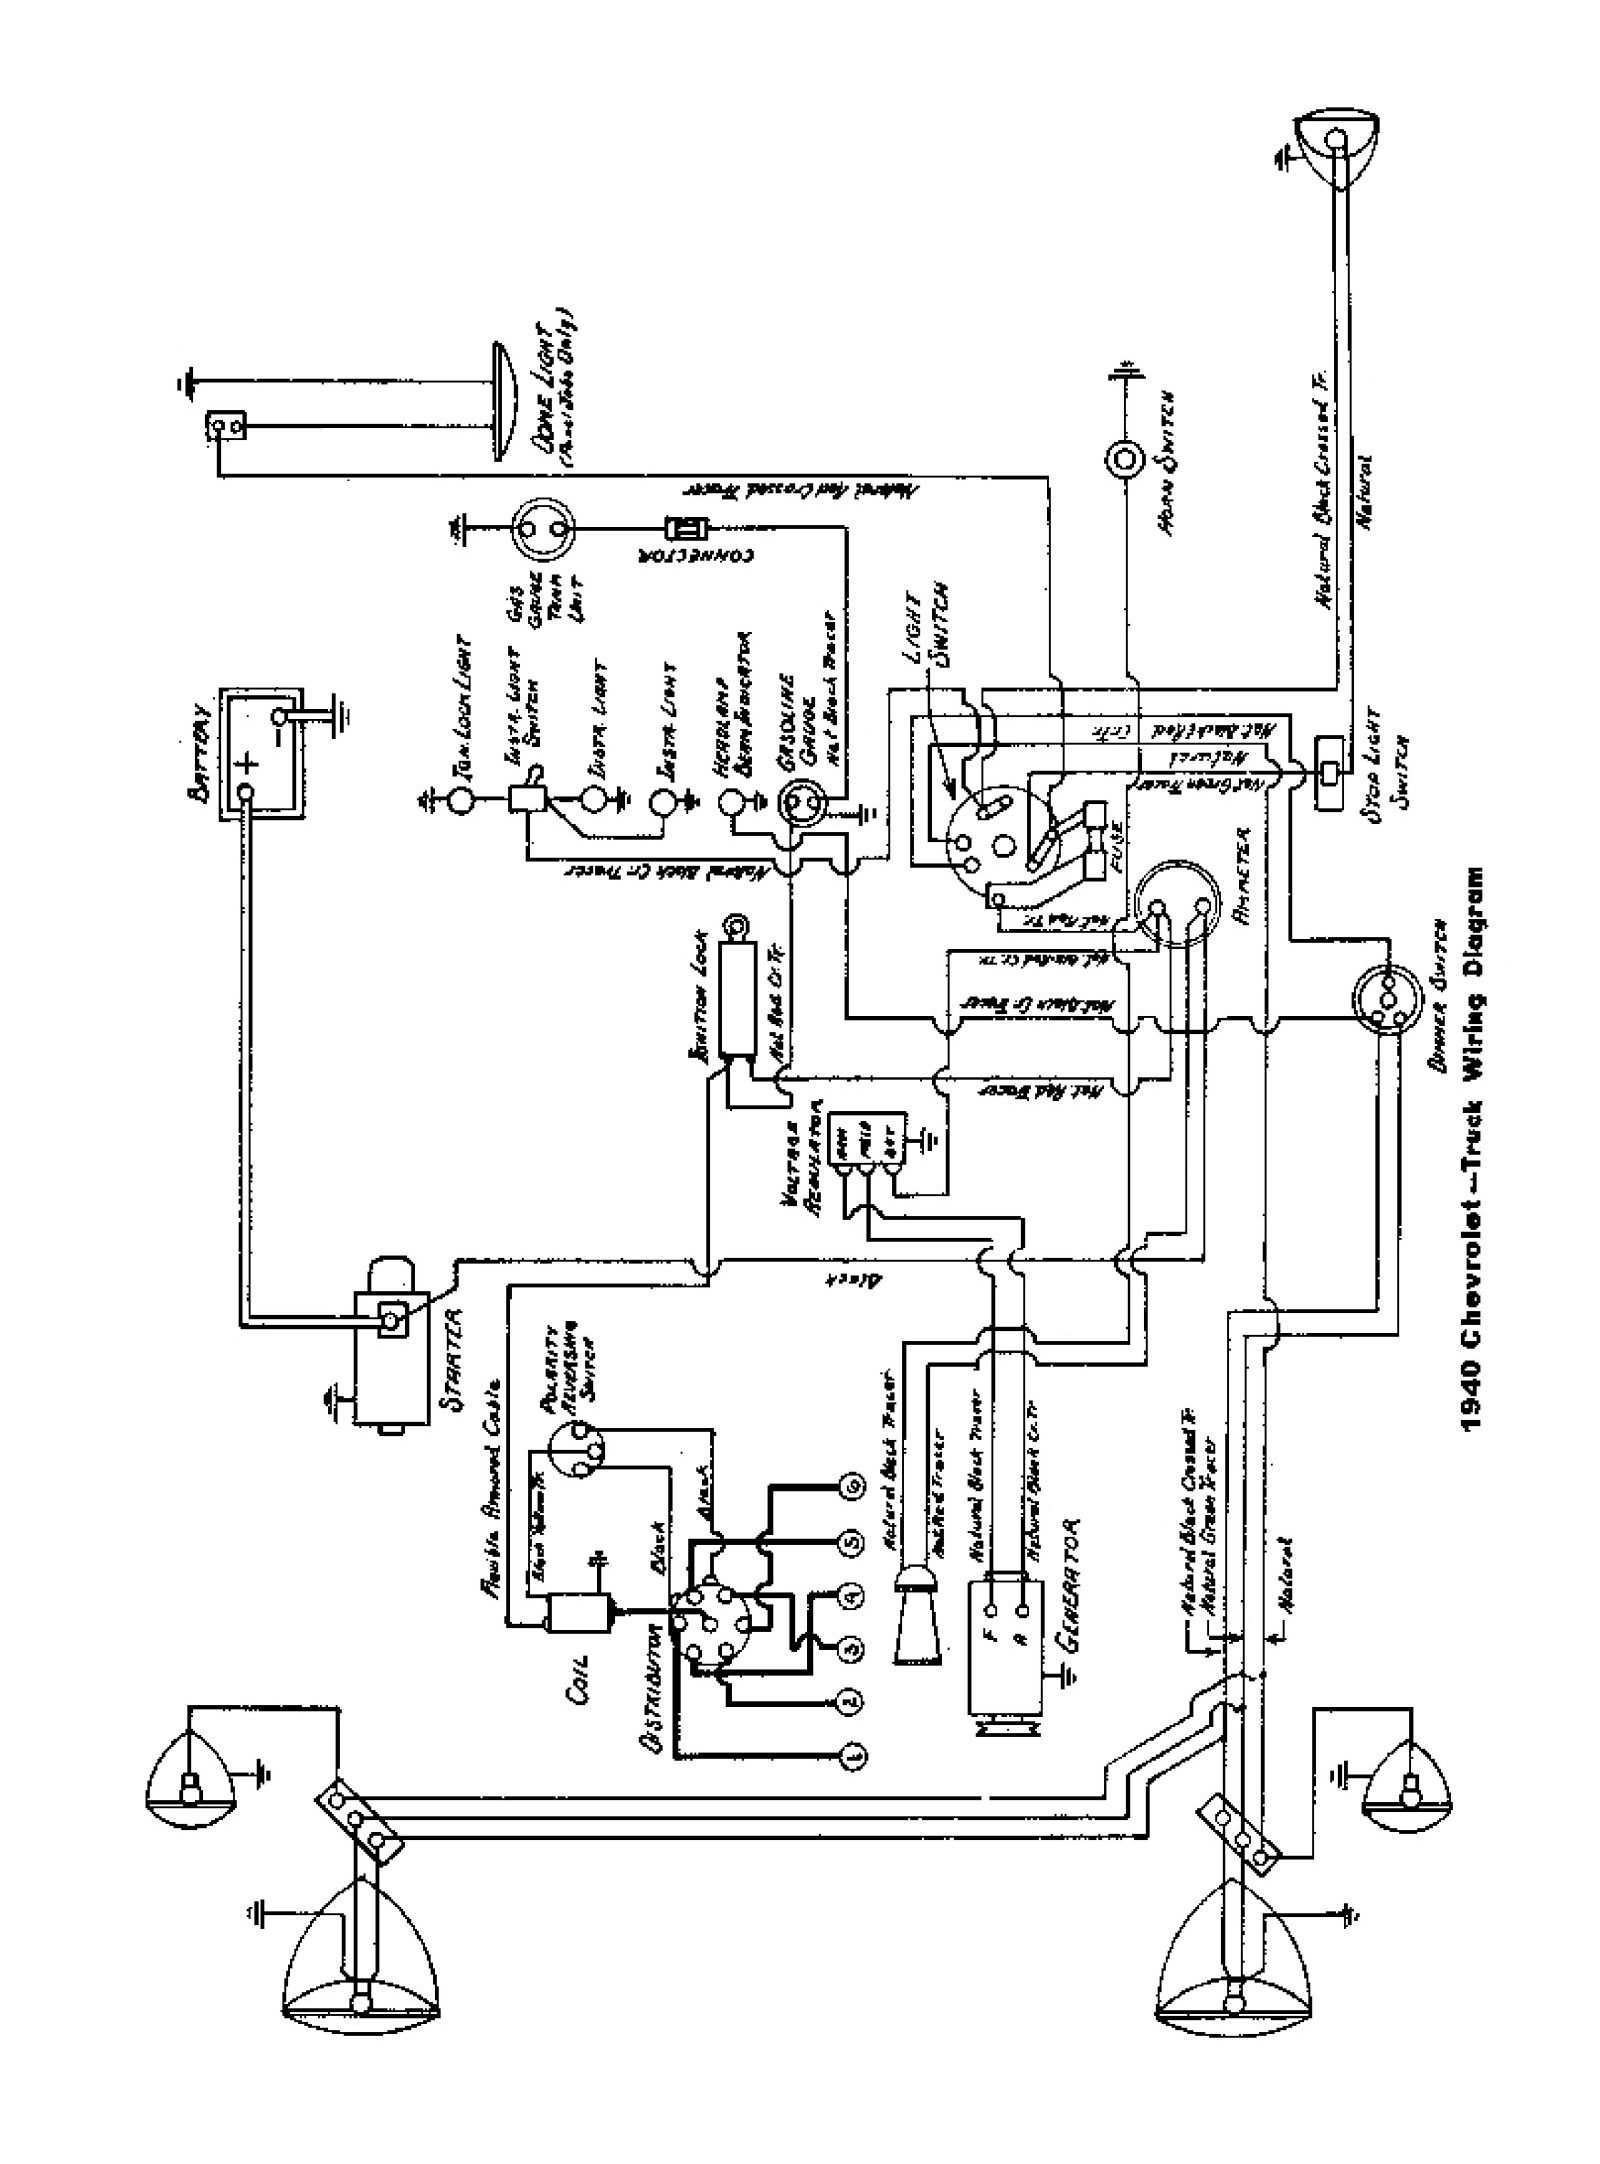 Gm Steering Column Wiring Diagram 1970 Nova Steering